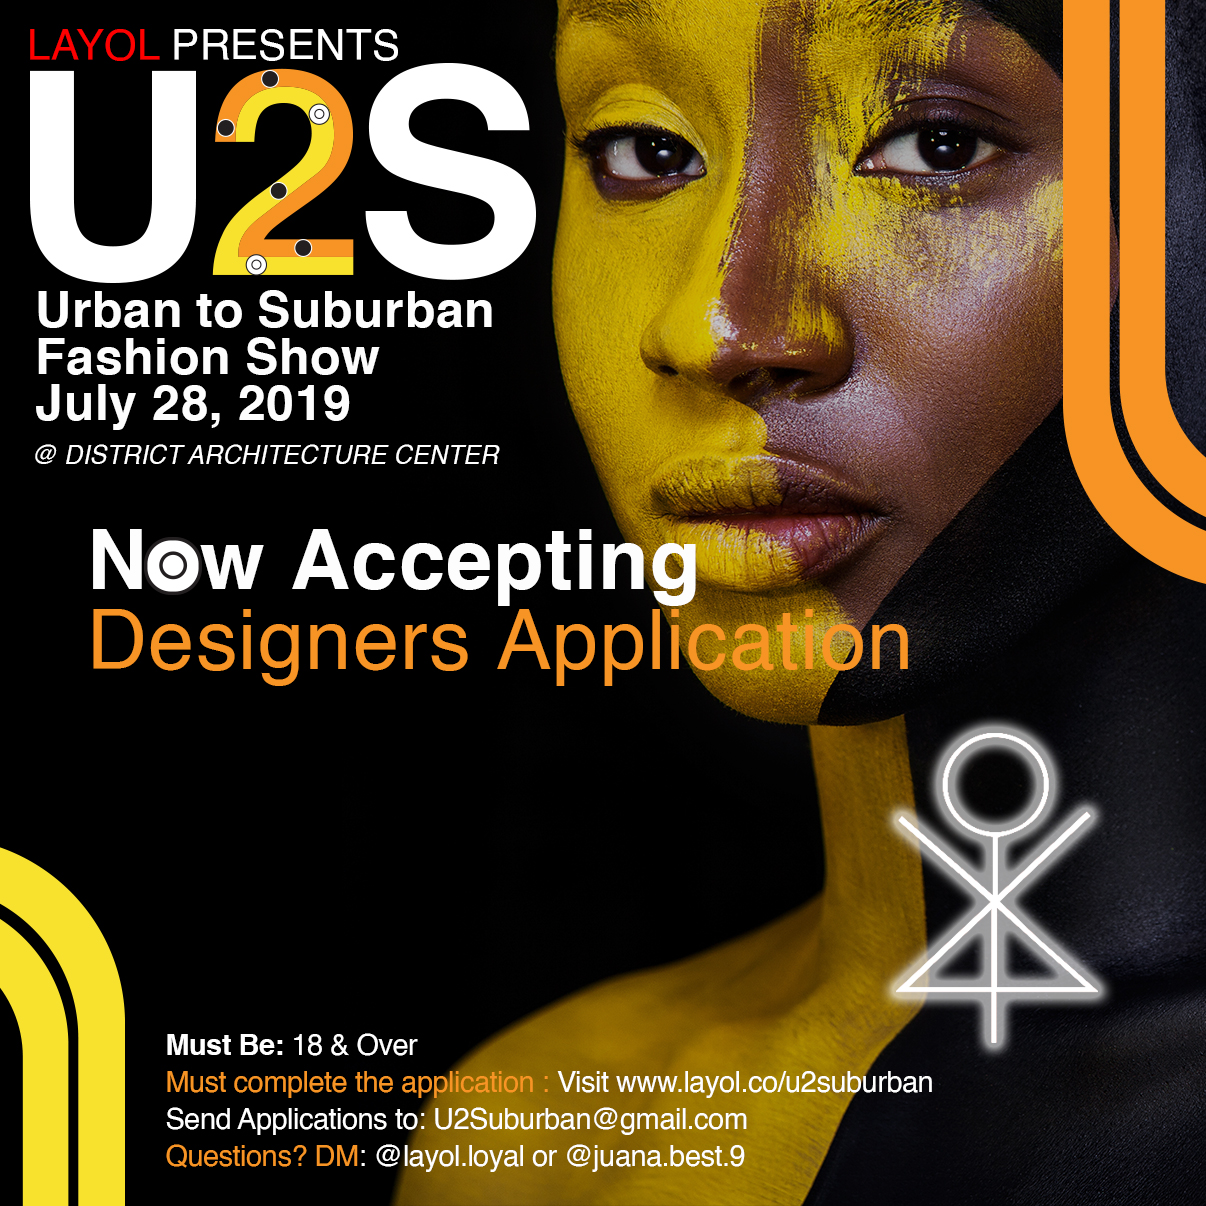 get your application Today - APPLY NowSend all applications to U2Suburban@gmail.com